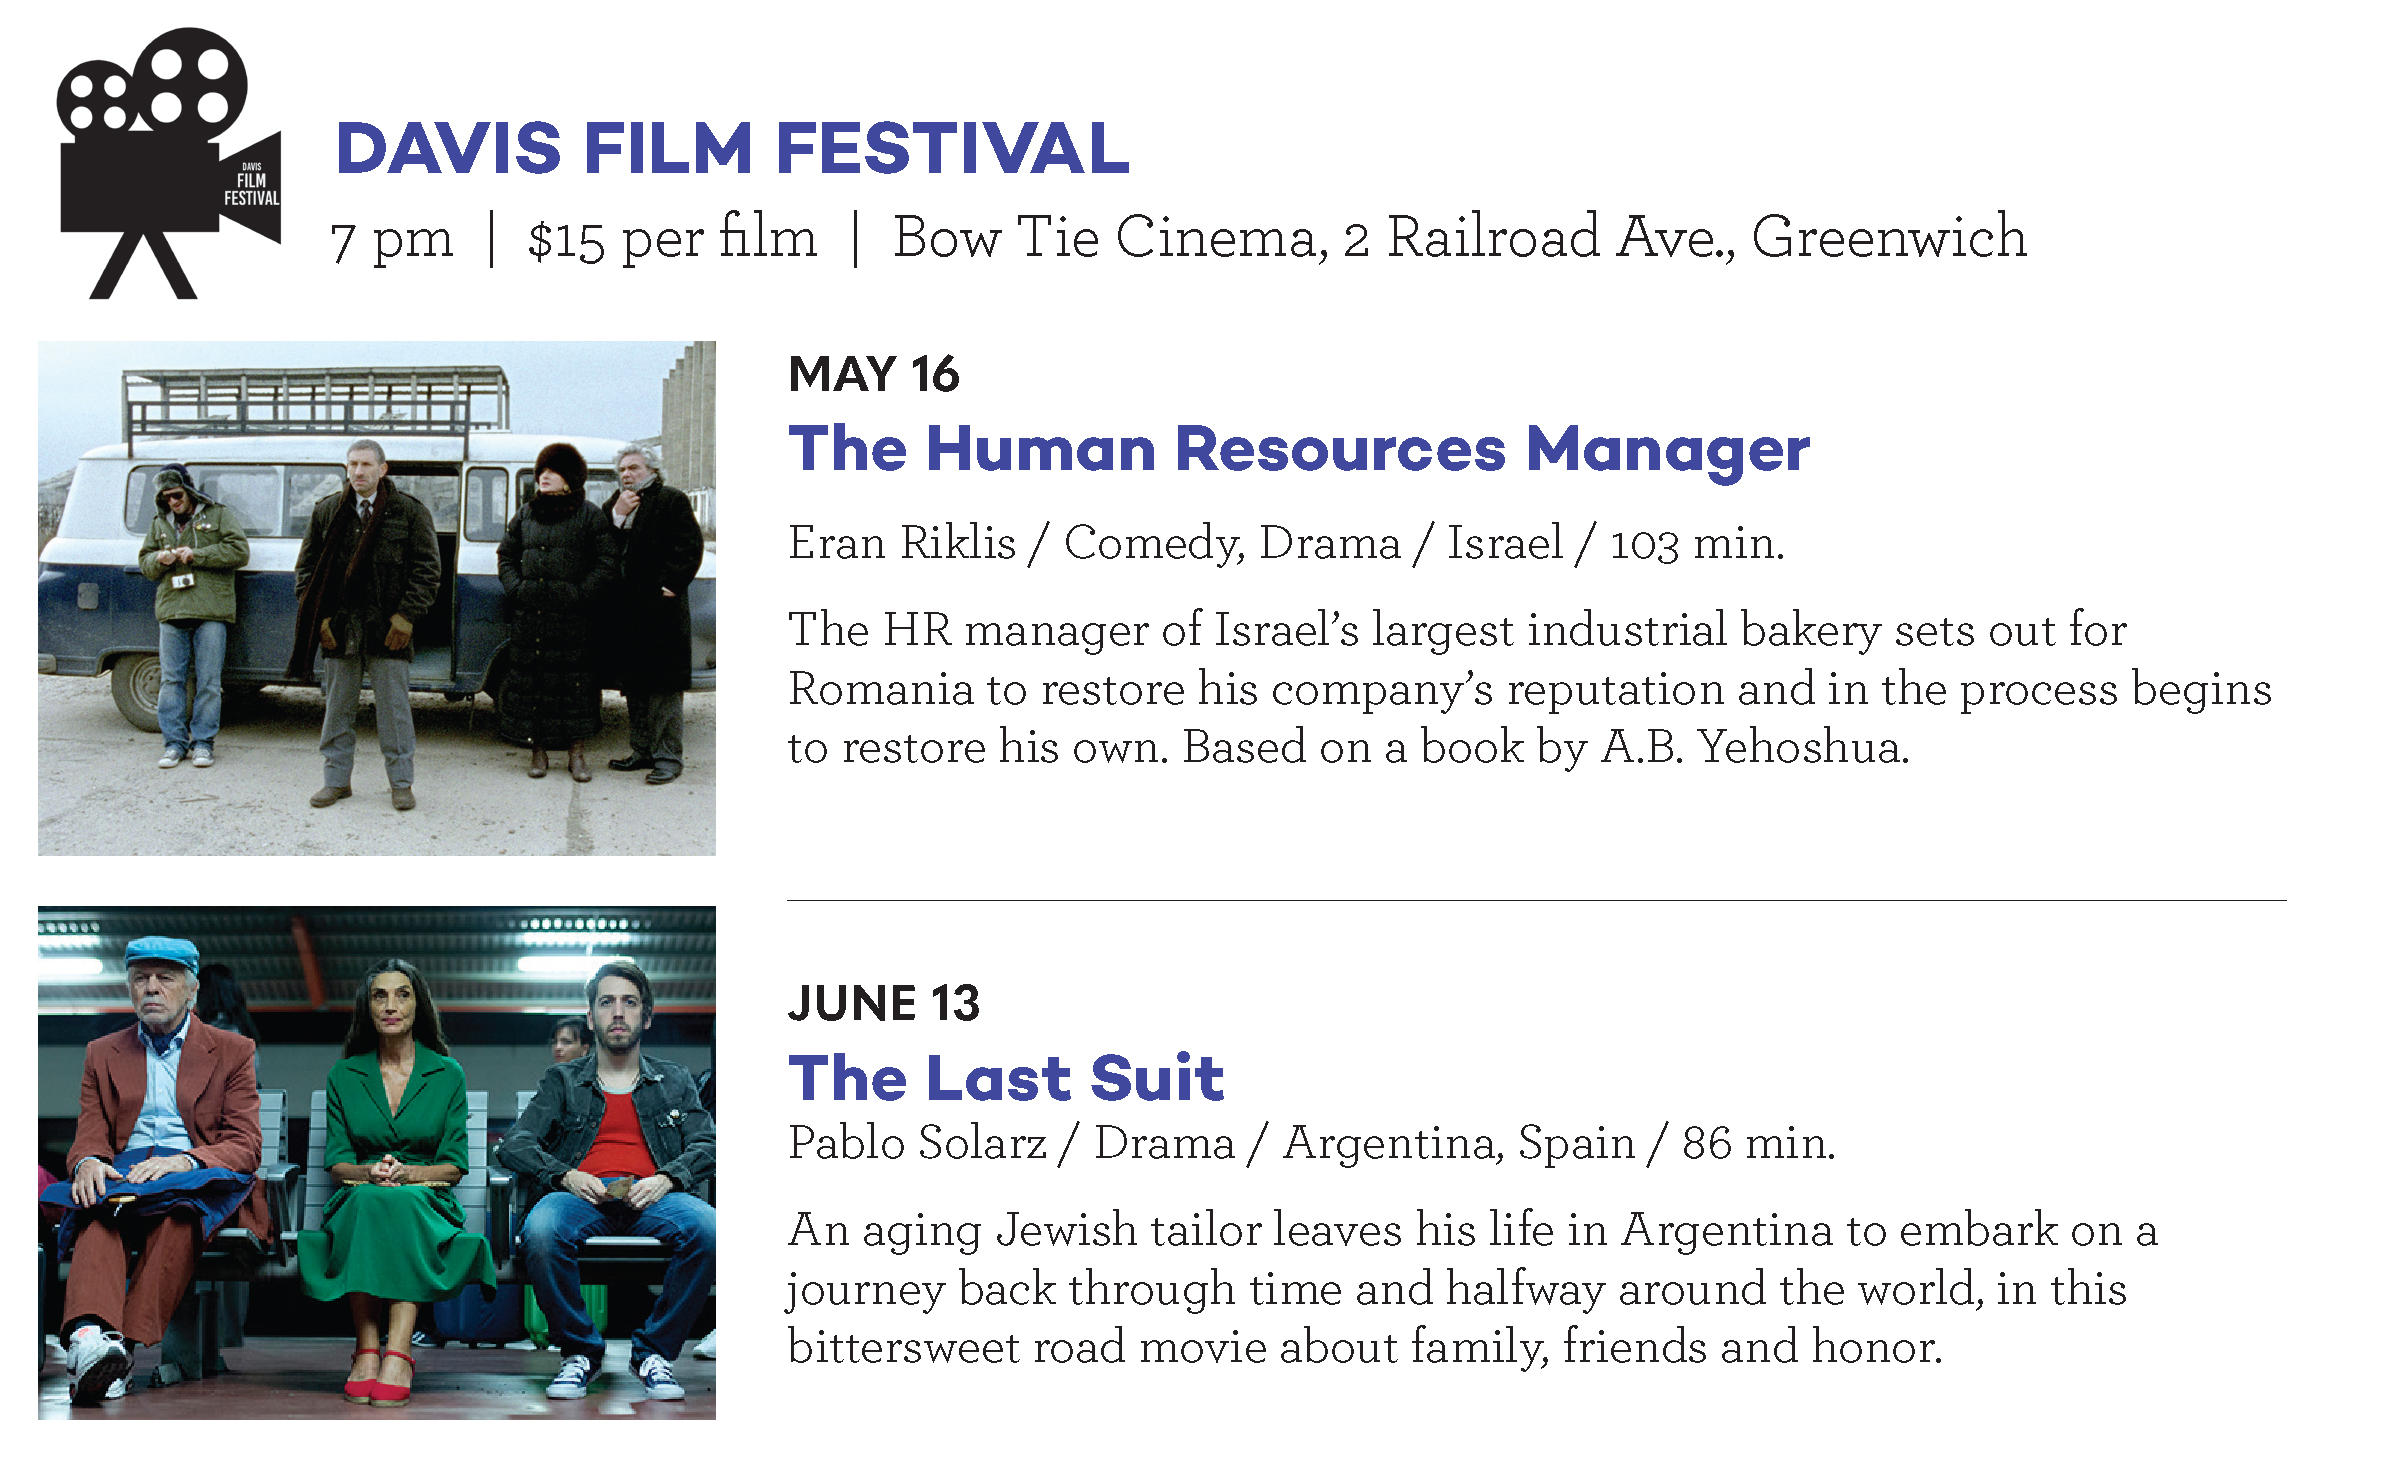 Jewish cinema to Greenwich - Davis Film Festival - The Human Resources Manager